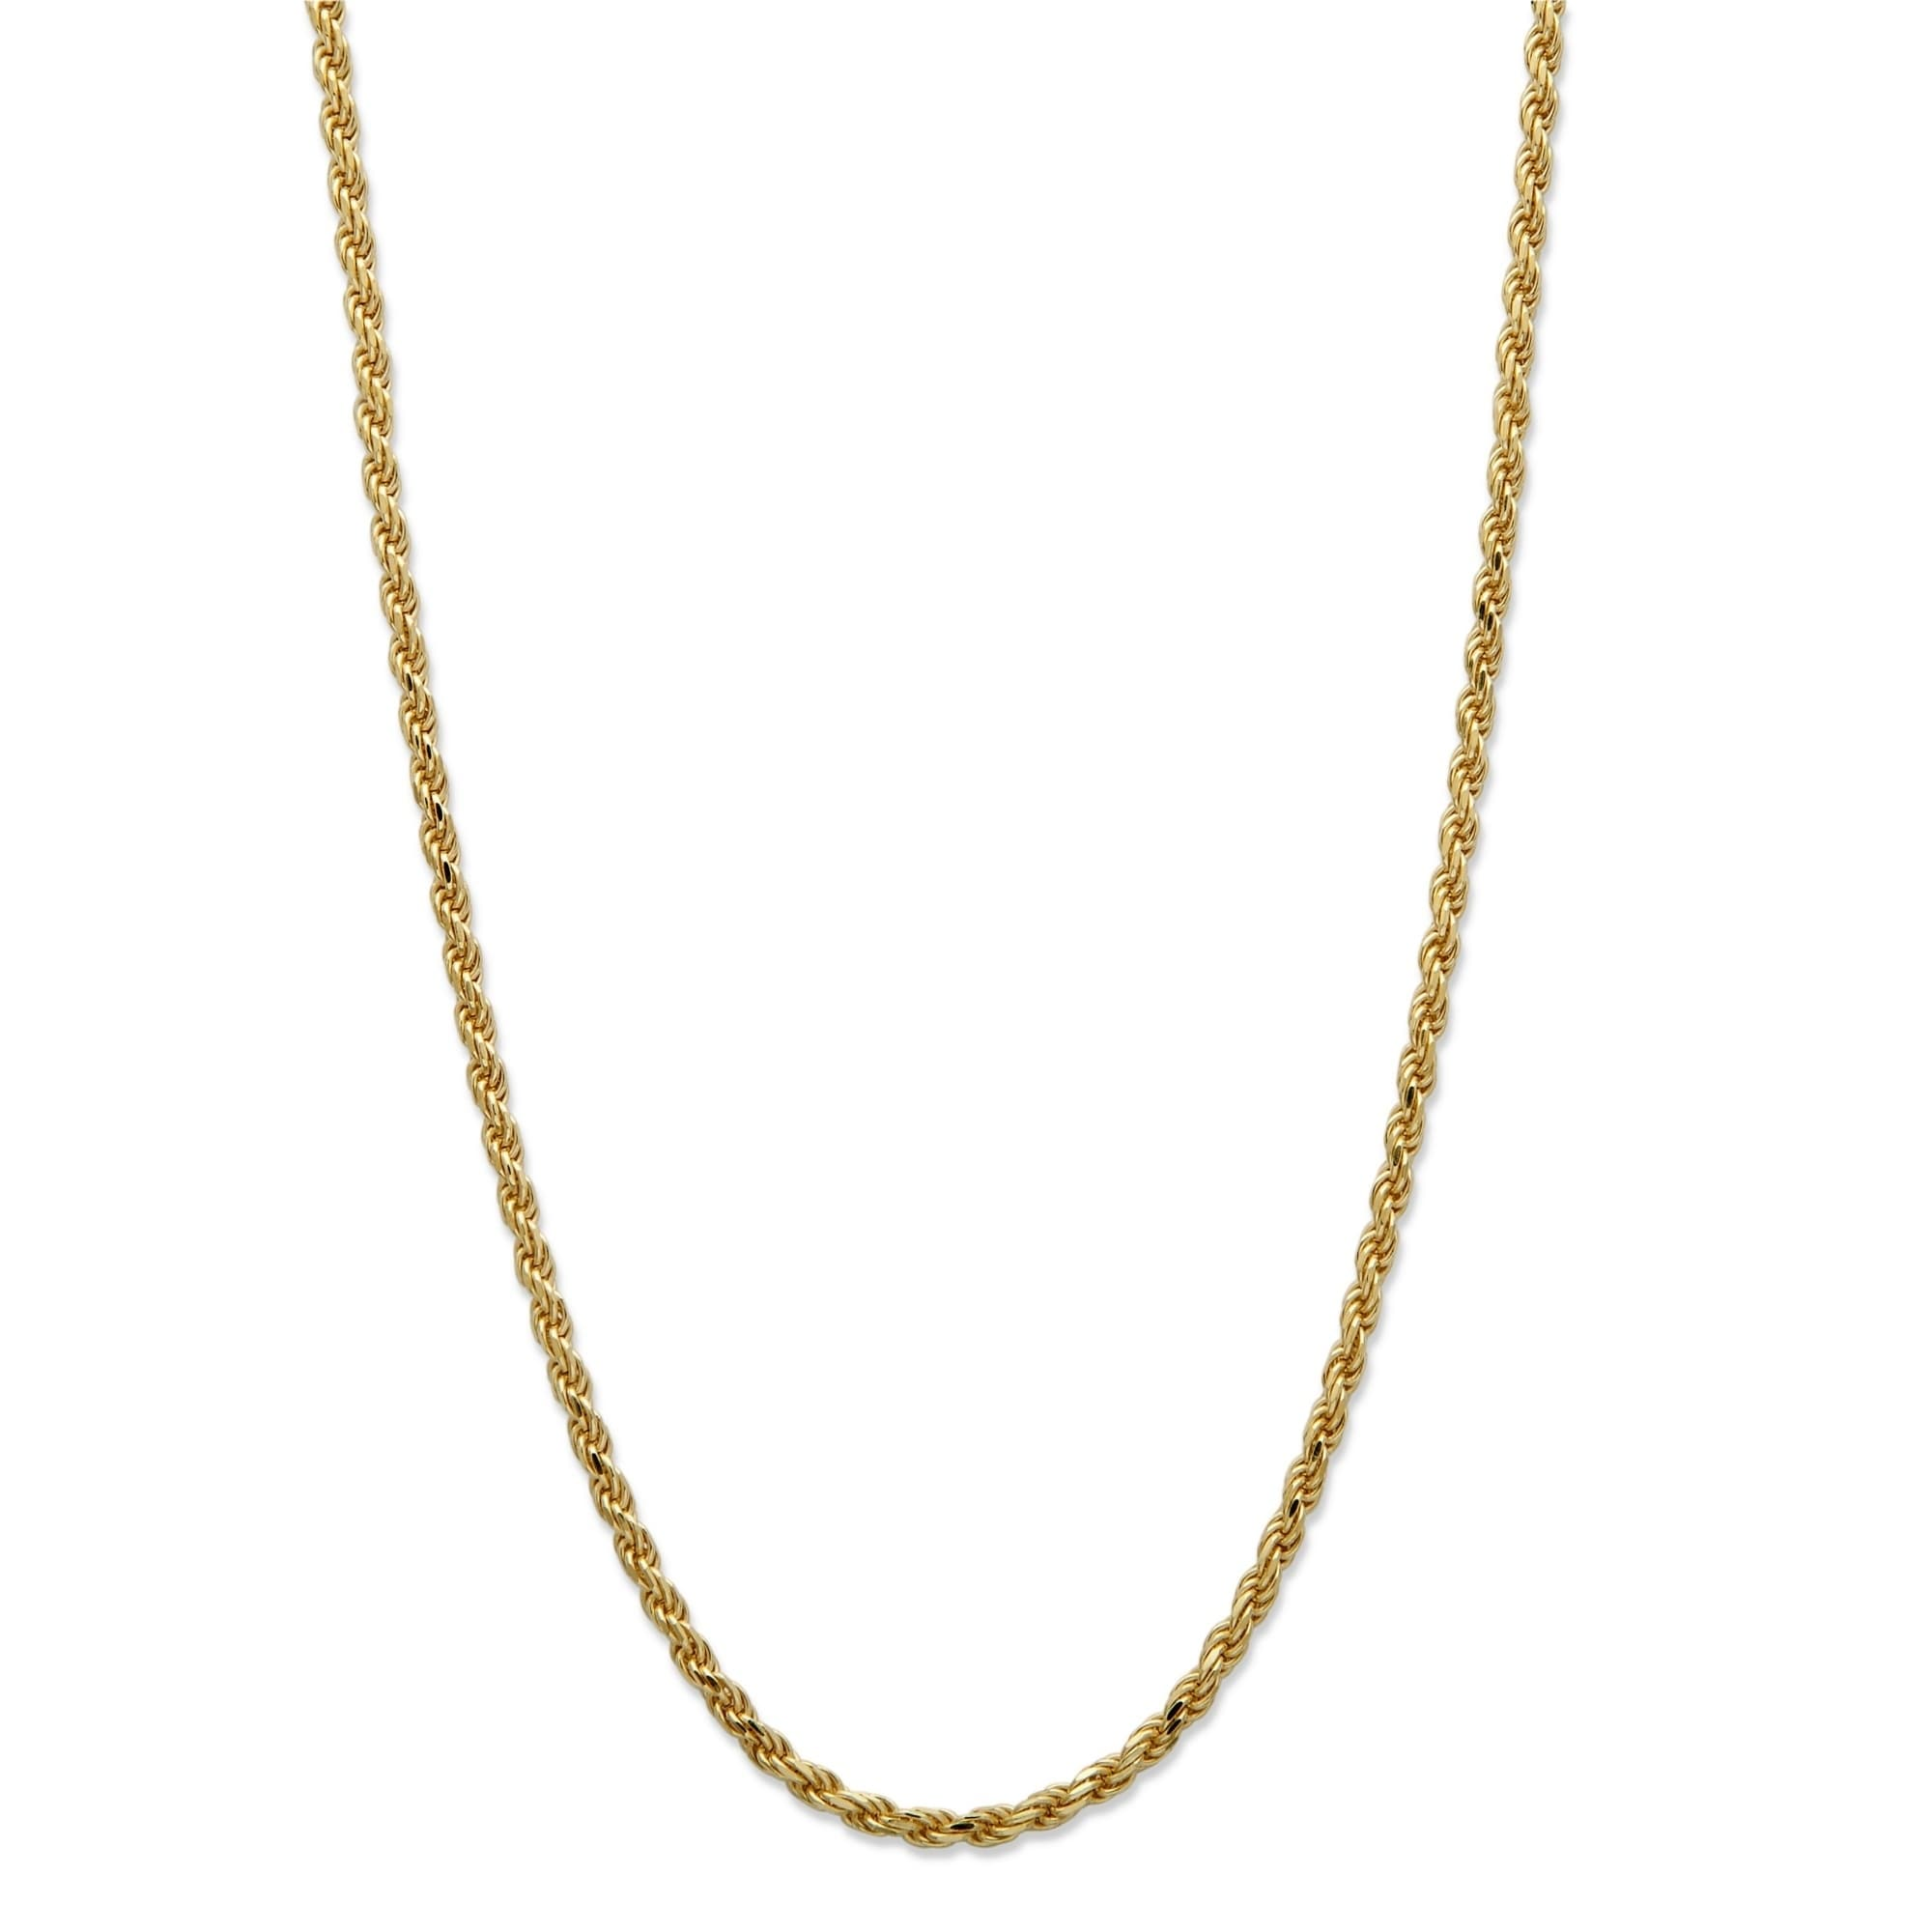 624b5eff0 Shop Yellow Gold over Sterling Silver Rope Chain Necklace (2mm), 18 ...